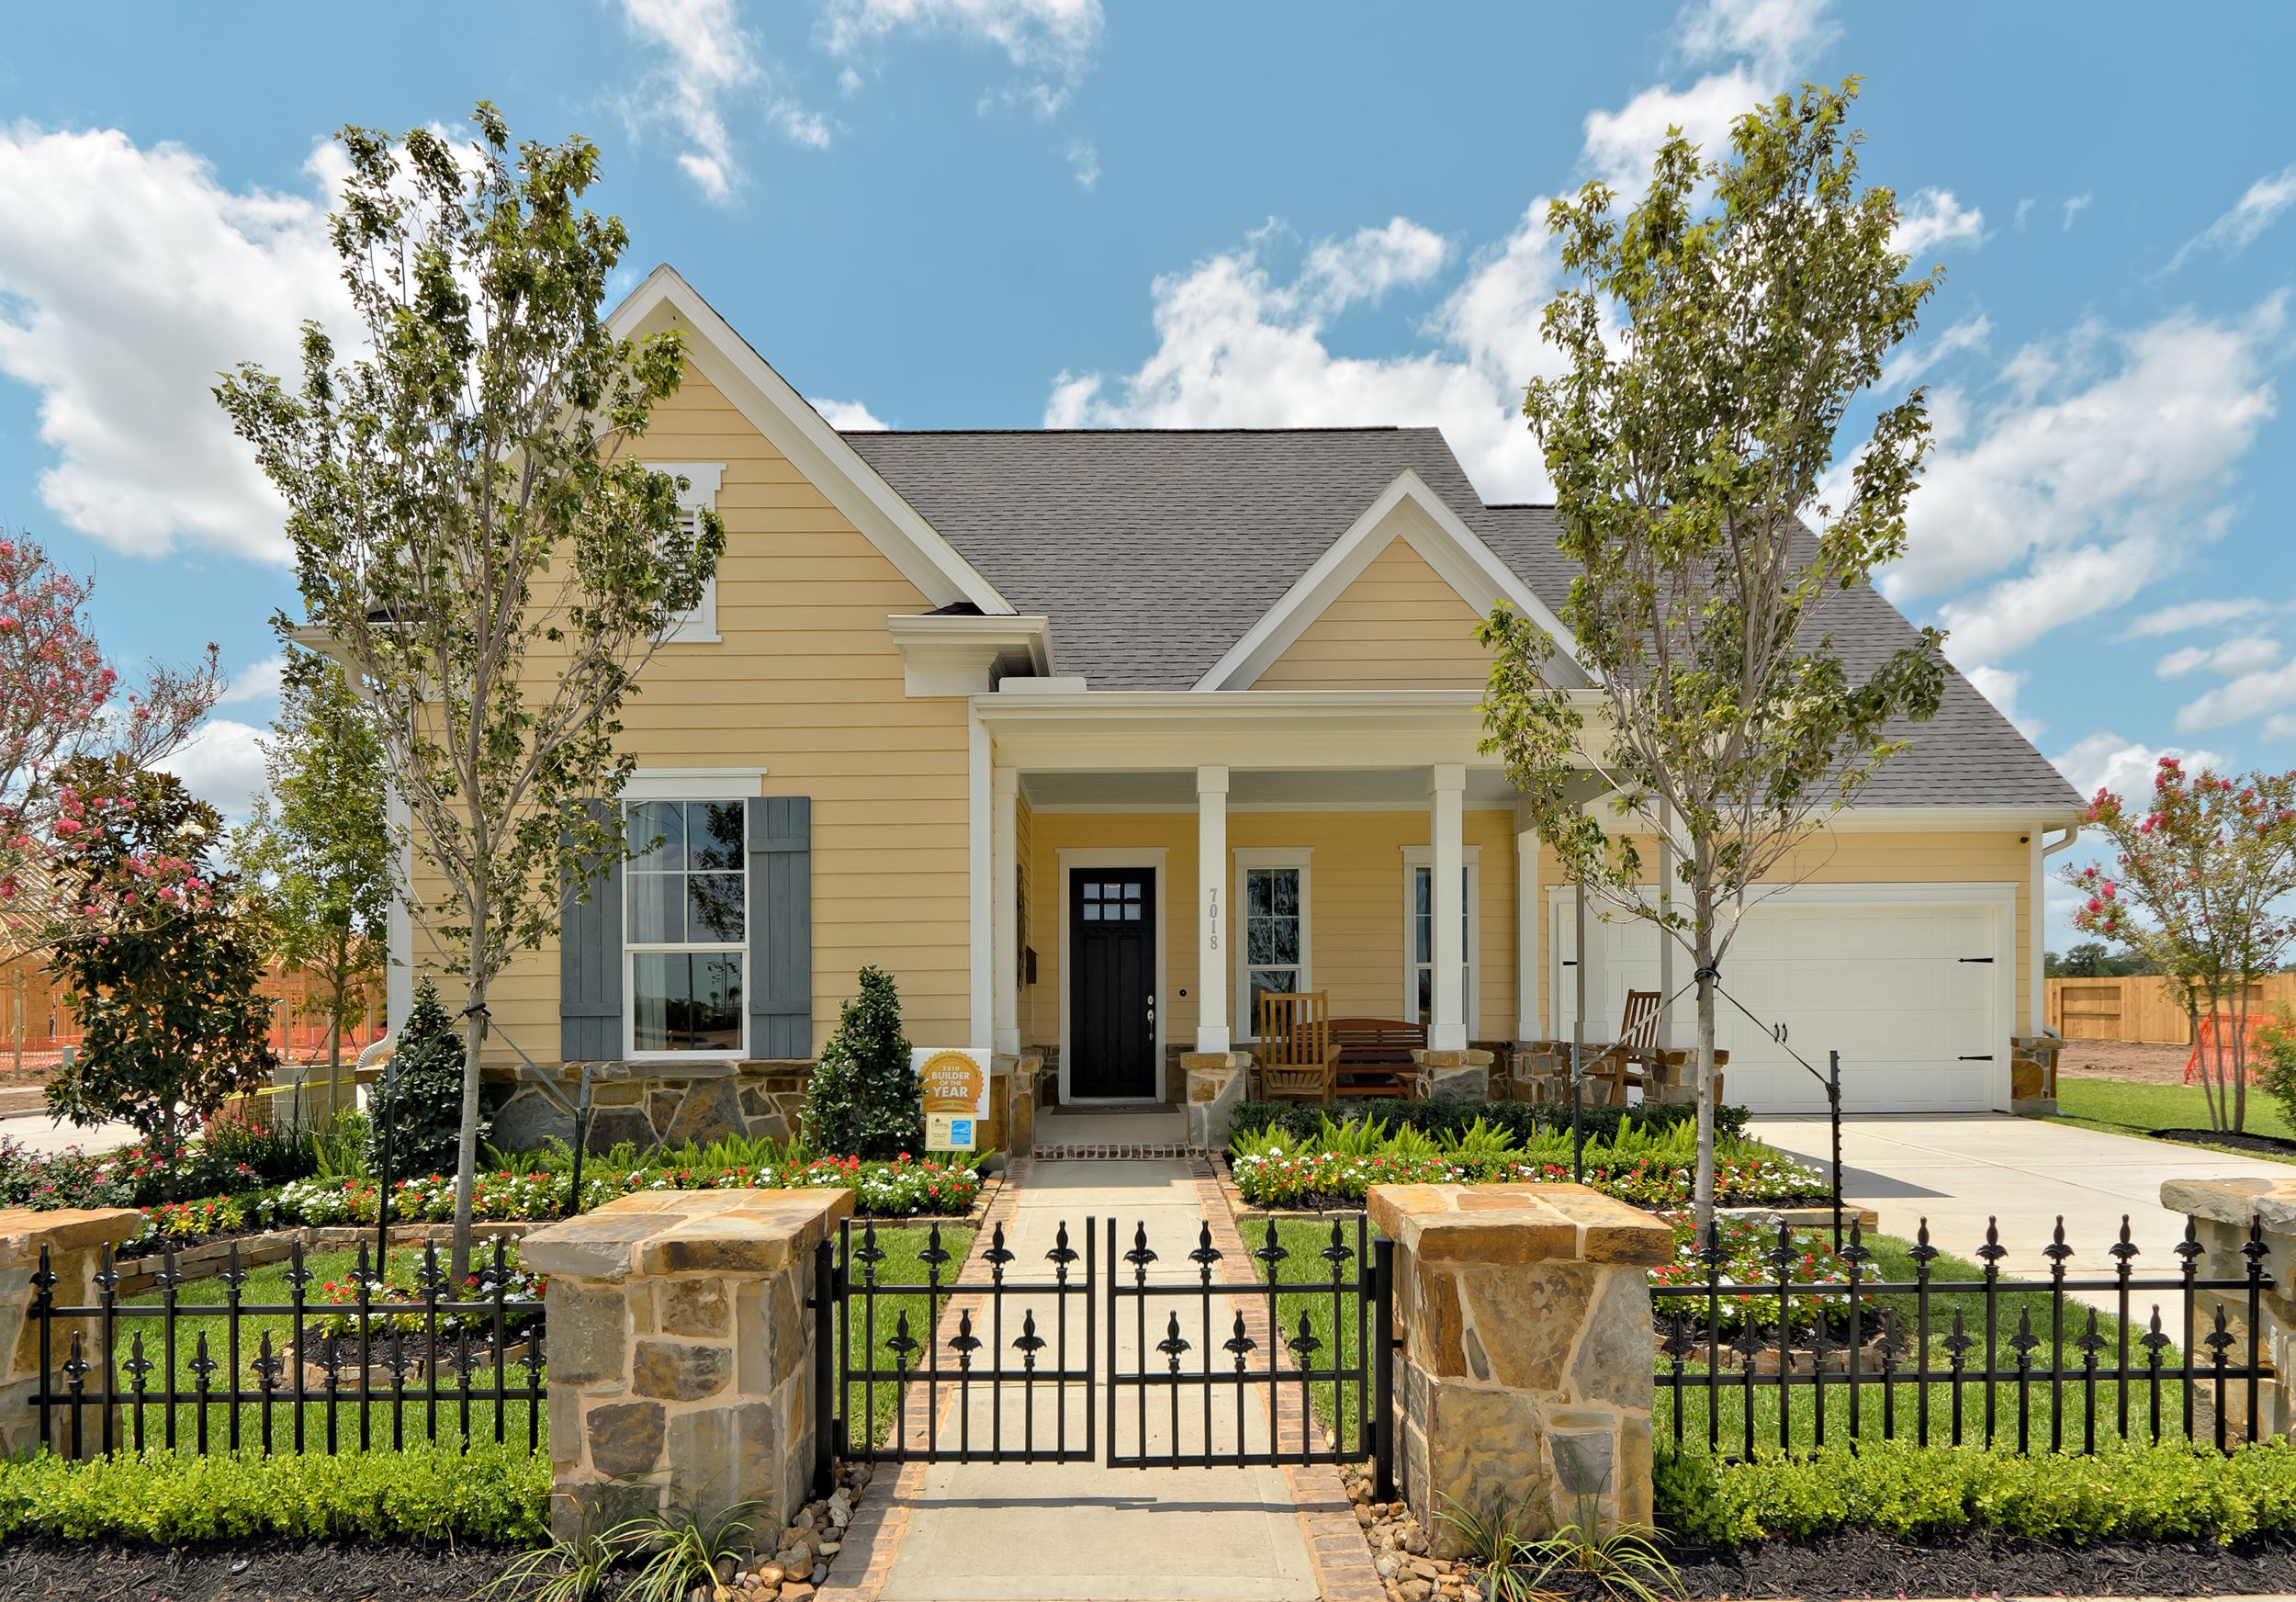 Darling Homes Sienna American Classic Home Design